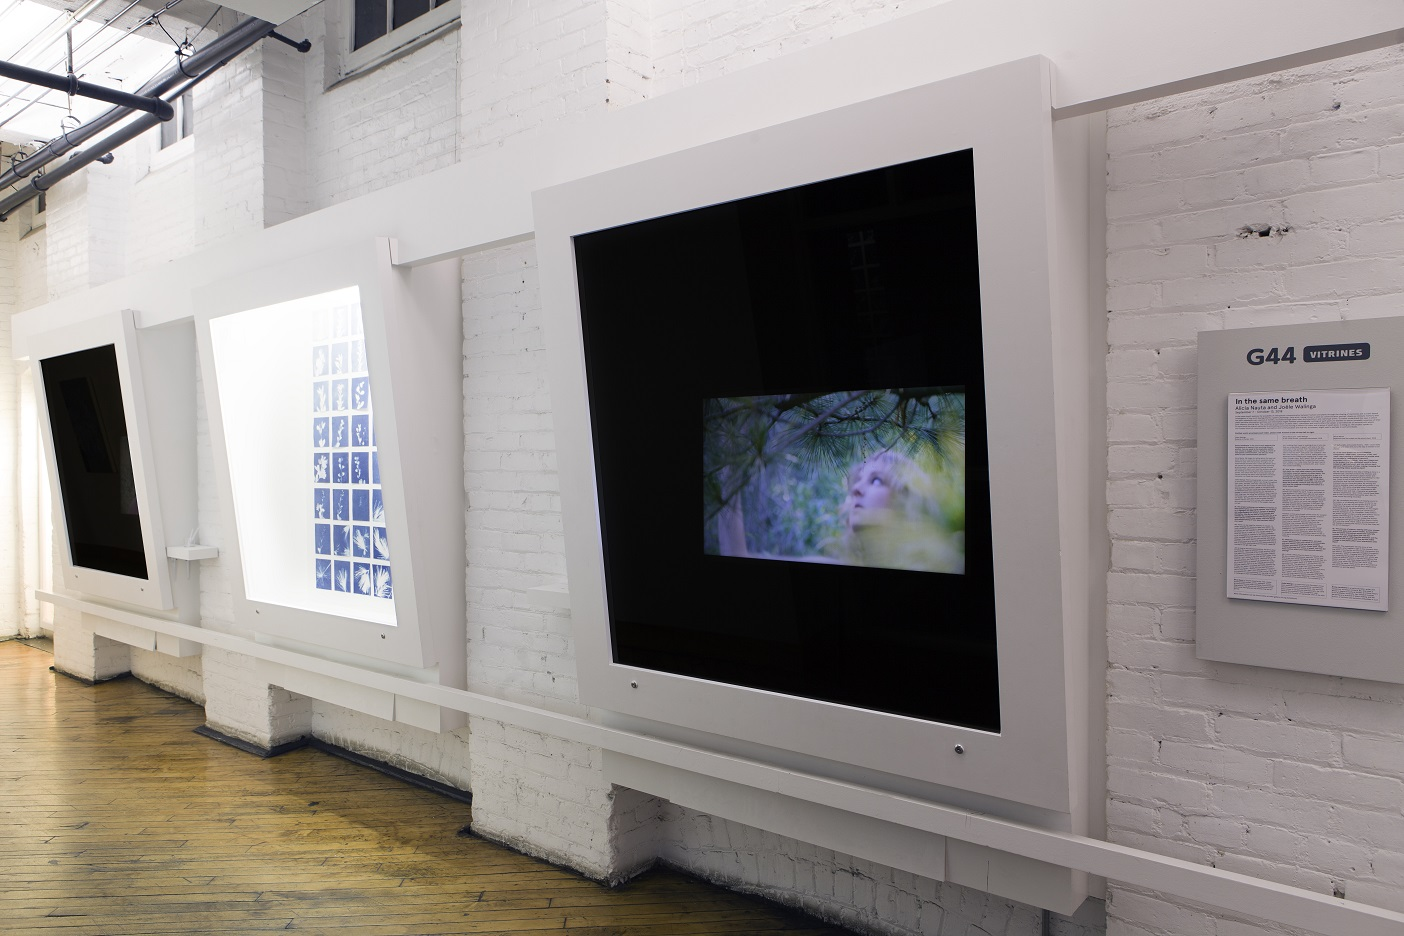 "In the same breath, installation shot  Collaboration with Joële Walinga September 7 - October 13, 2018 Gallery 44, Toronto  This exhibition investigates the transference of memory from one living thing to another. ""In the same breath"" documents Nauta and Walinga speaking their most intimate memories to plants, capturing these interactions in a series of silent videos and cyanotype prints. Exploring the possibility that plants can retain memory and hold emotions, cuttings from these plants are distilled, creating scents to accompany the works and offering intimate possibilities for engaging the natural world.   gallery44.org/exhibitions/same-breath"